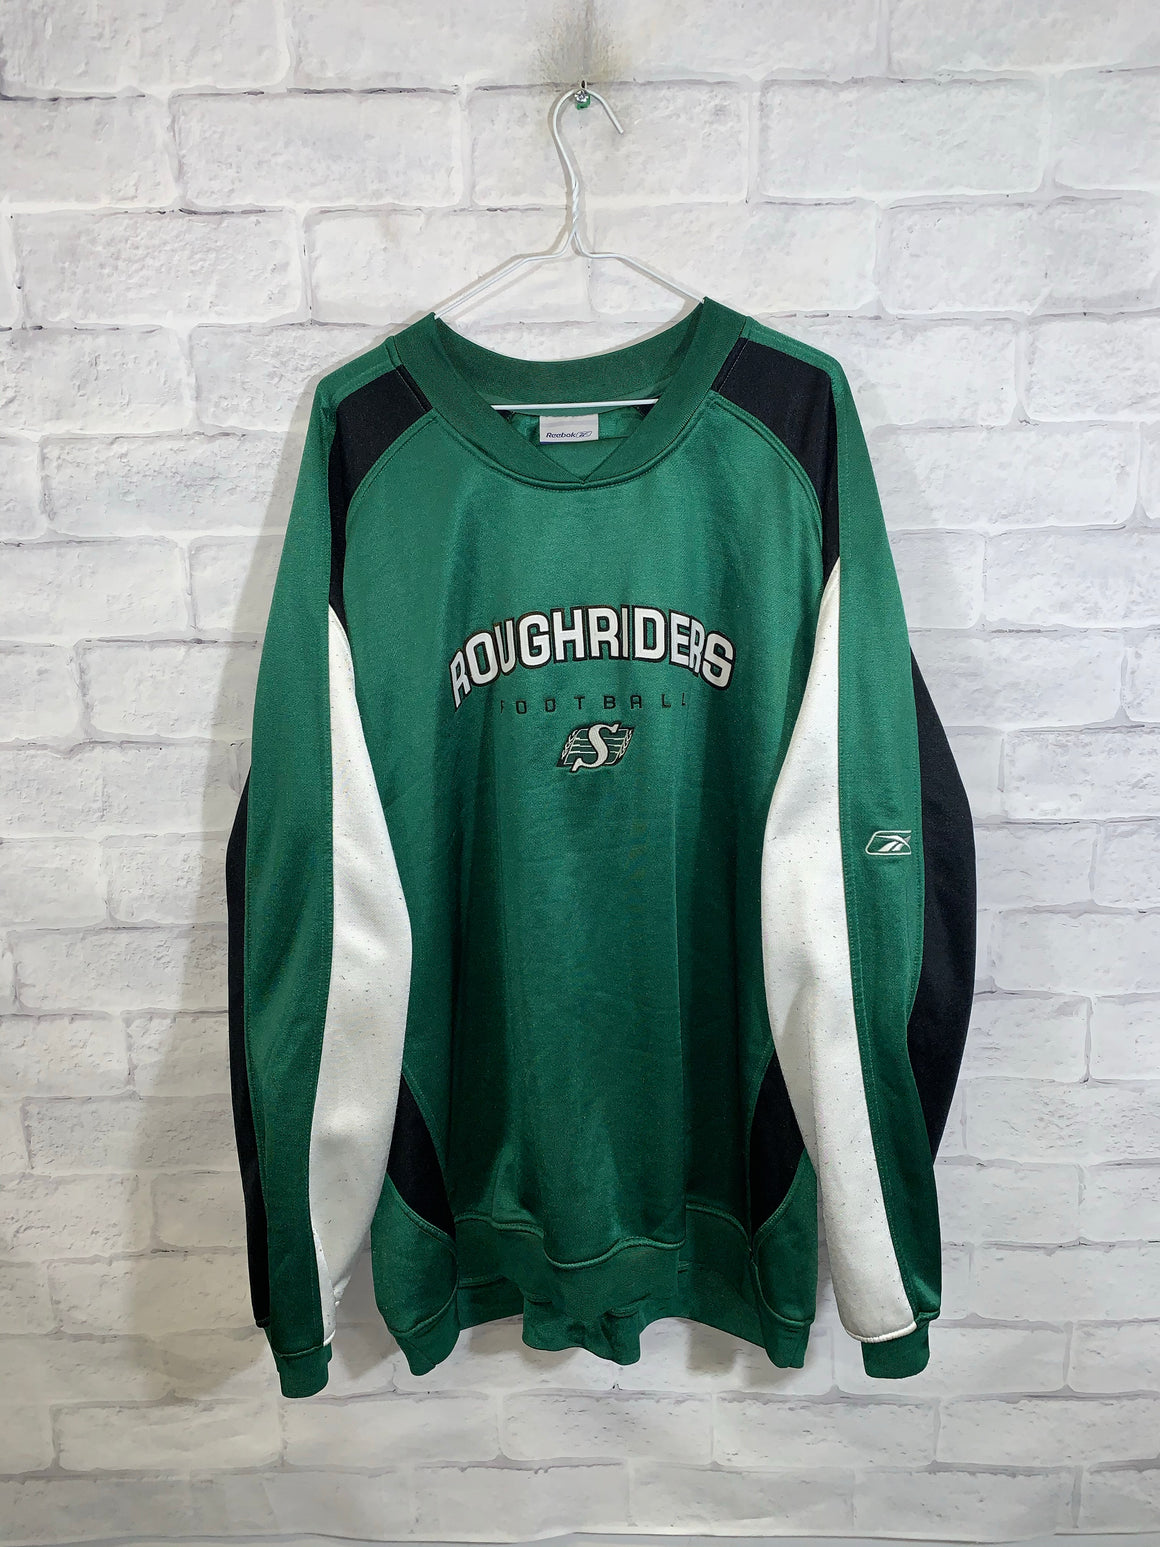 Green Reebok CFL Saskatchewan Roughriders Longsleeve Sweater